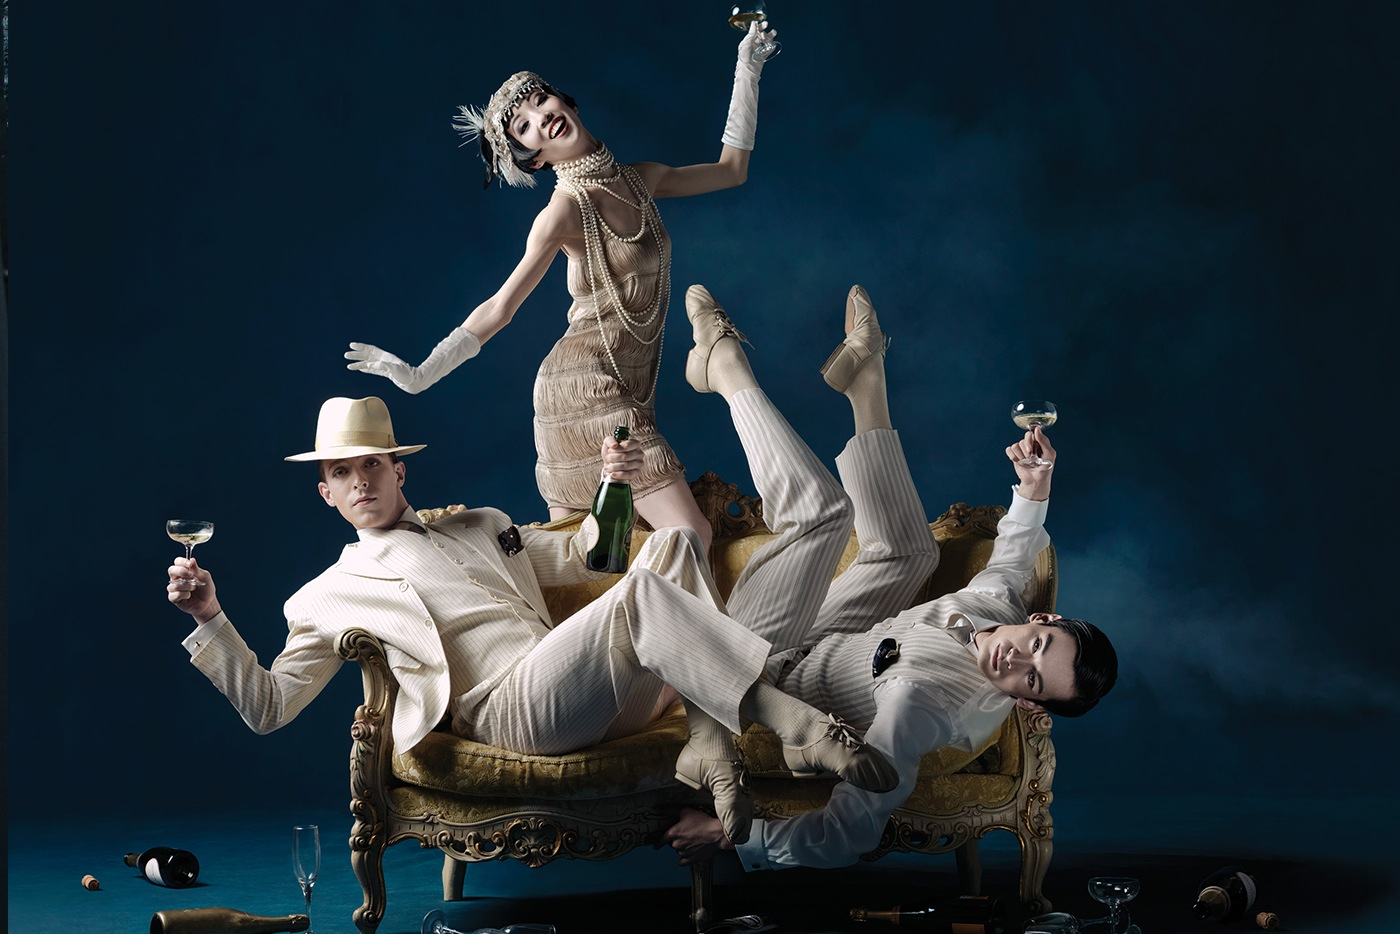 1400_933_Hong_Kong_Ballet_5_Tim_Yip_Septime_Webre_The_Great_Gatsby_Zolima_ZityMag